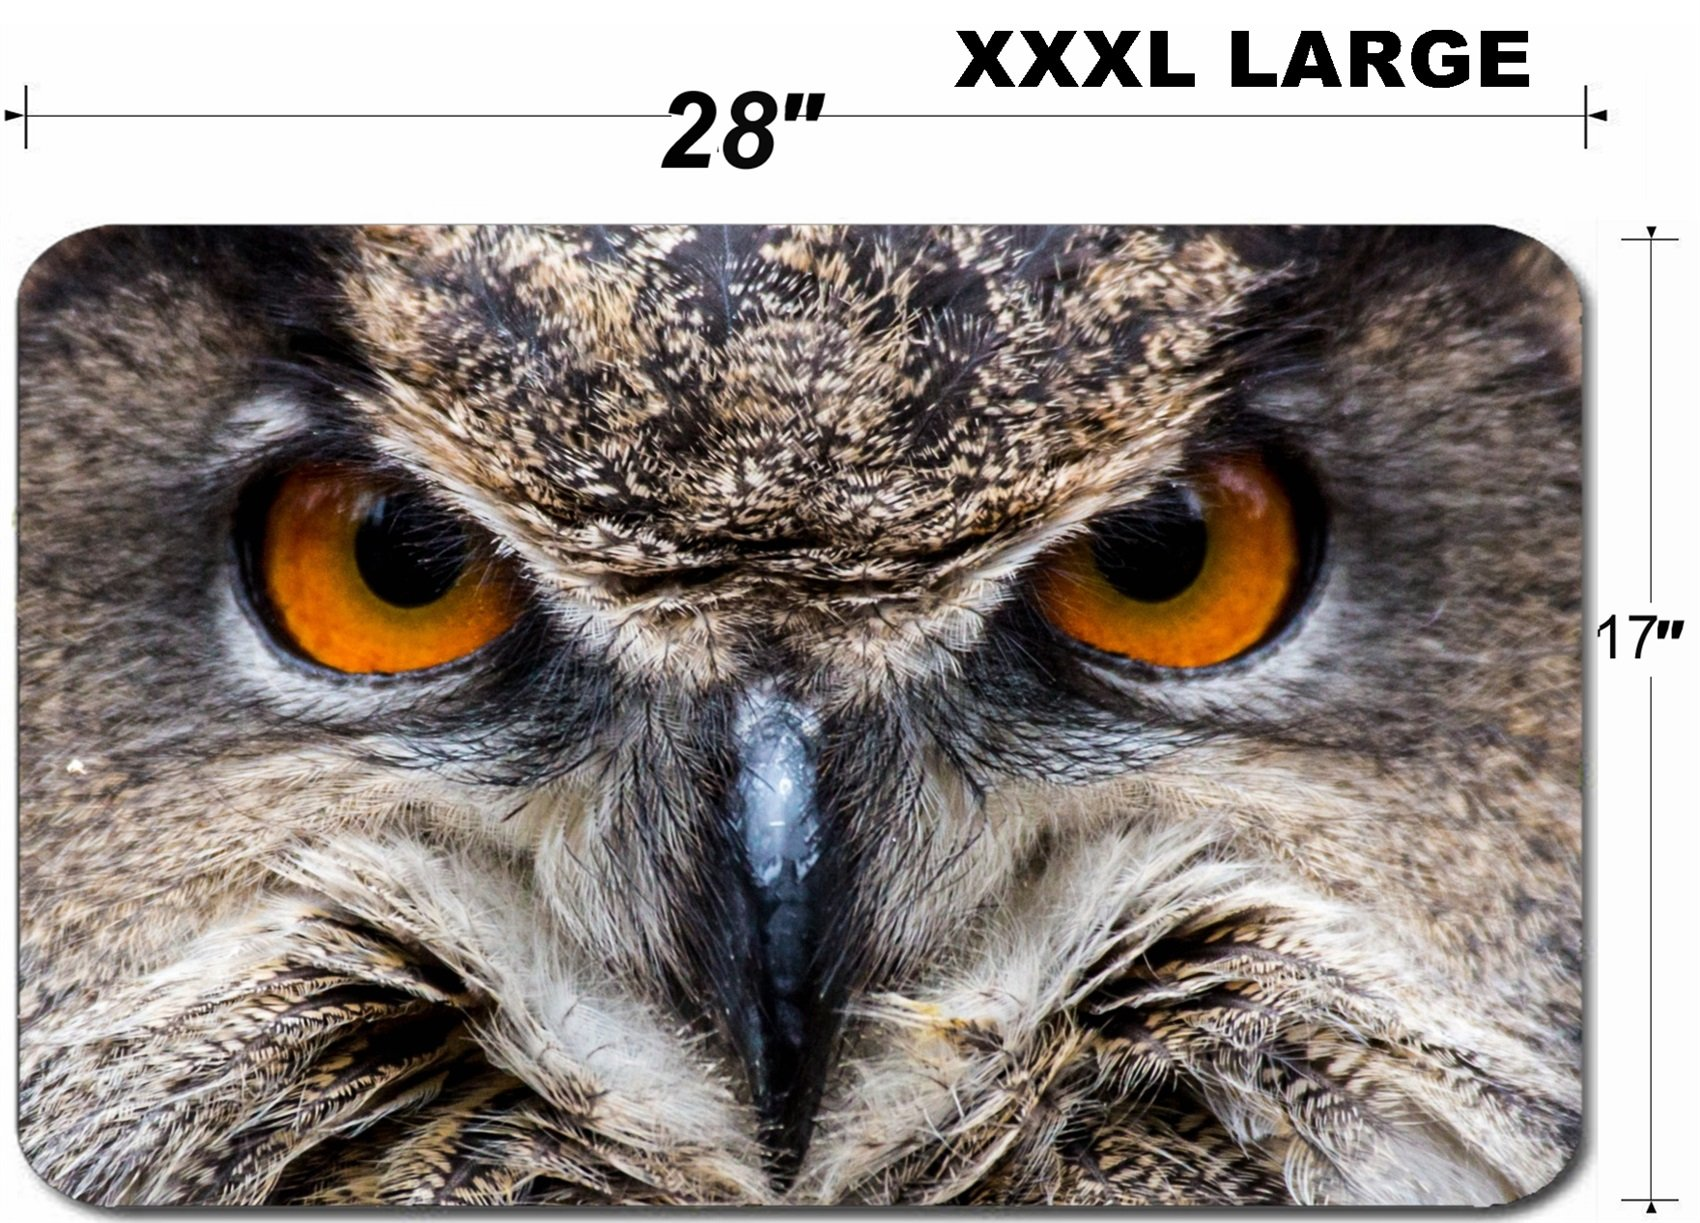 Liili Large Table Mat Non-Slip Natural Rubber Desk Pads IMAGE ID: 20523883 An adult Eurasian Eagle Owl in all of its majesty Piercing orange eyes and wide wing spa